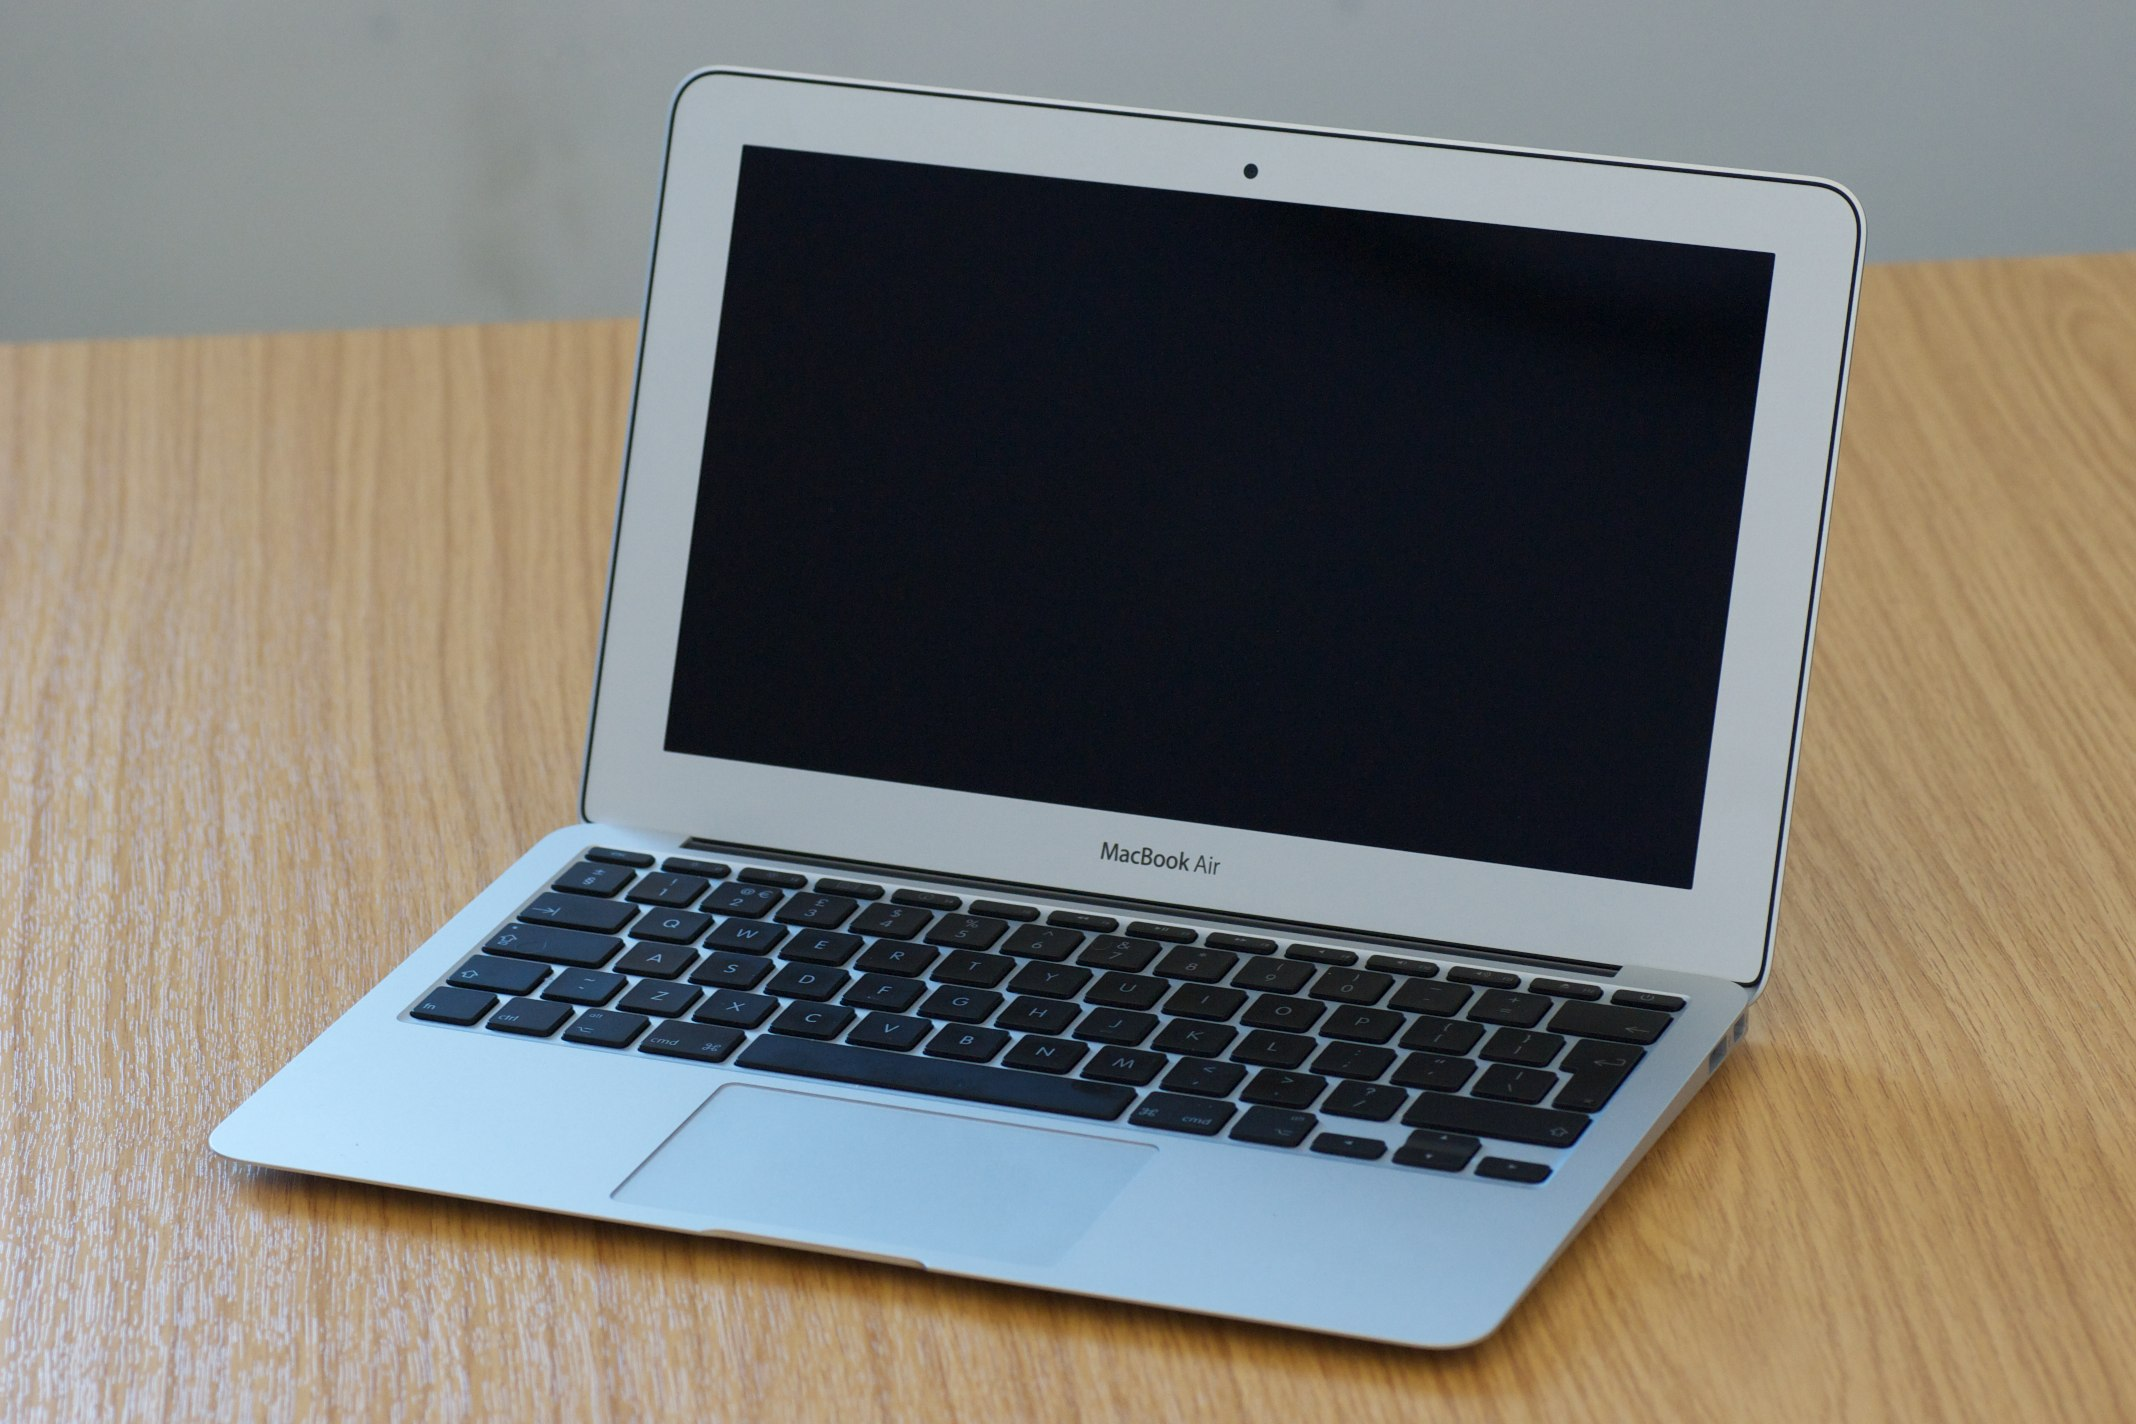 Old MacBook breathes new Air - Gadget